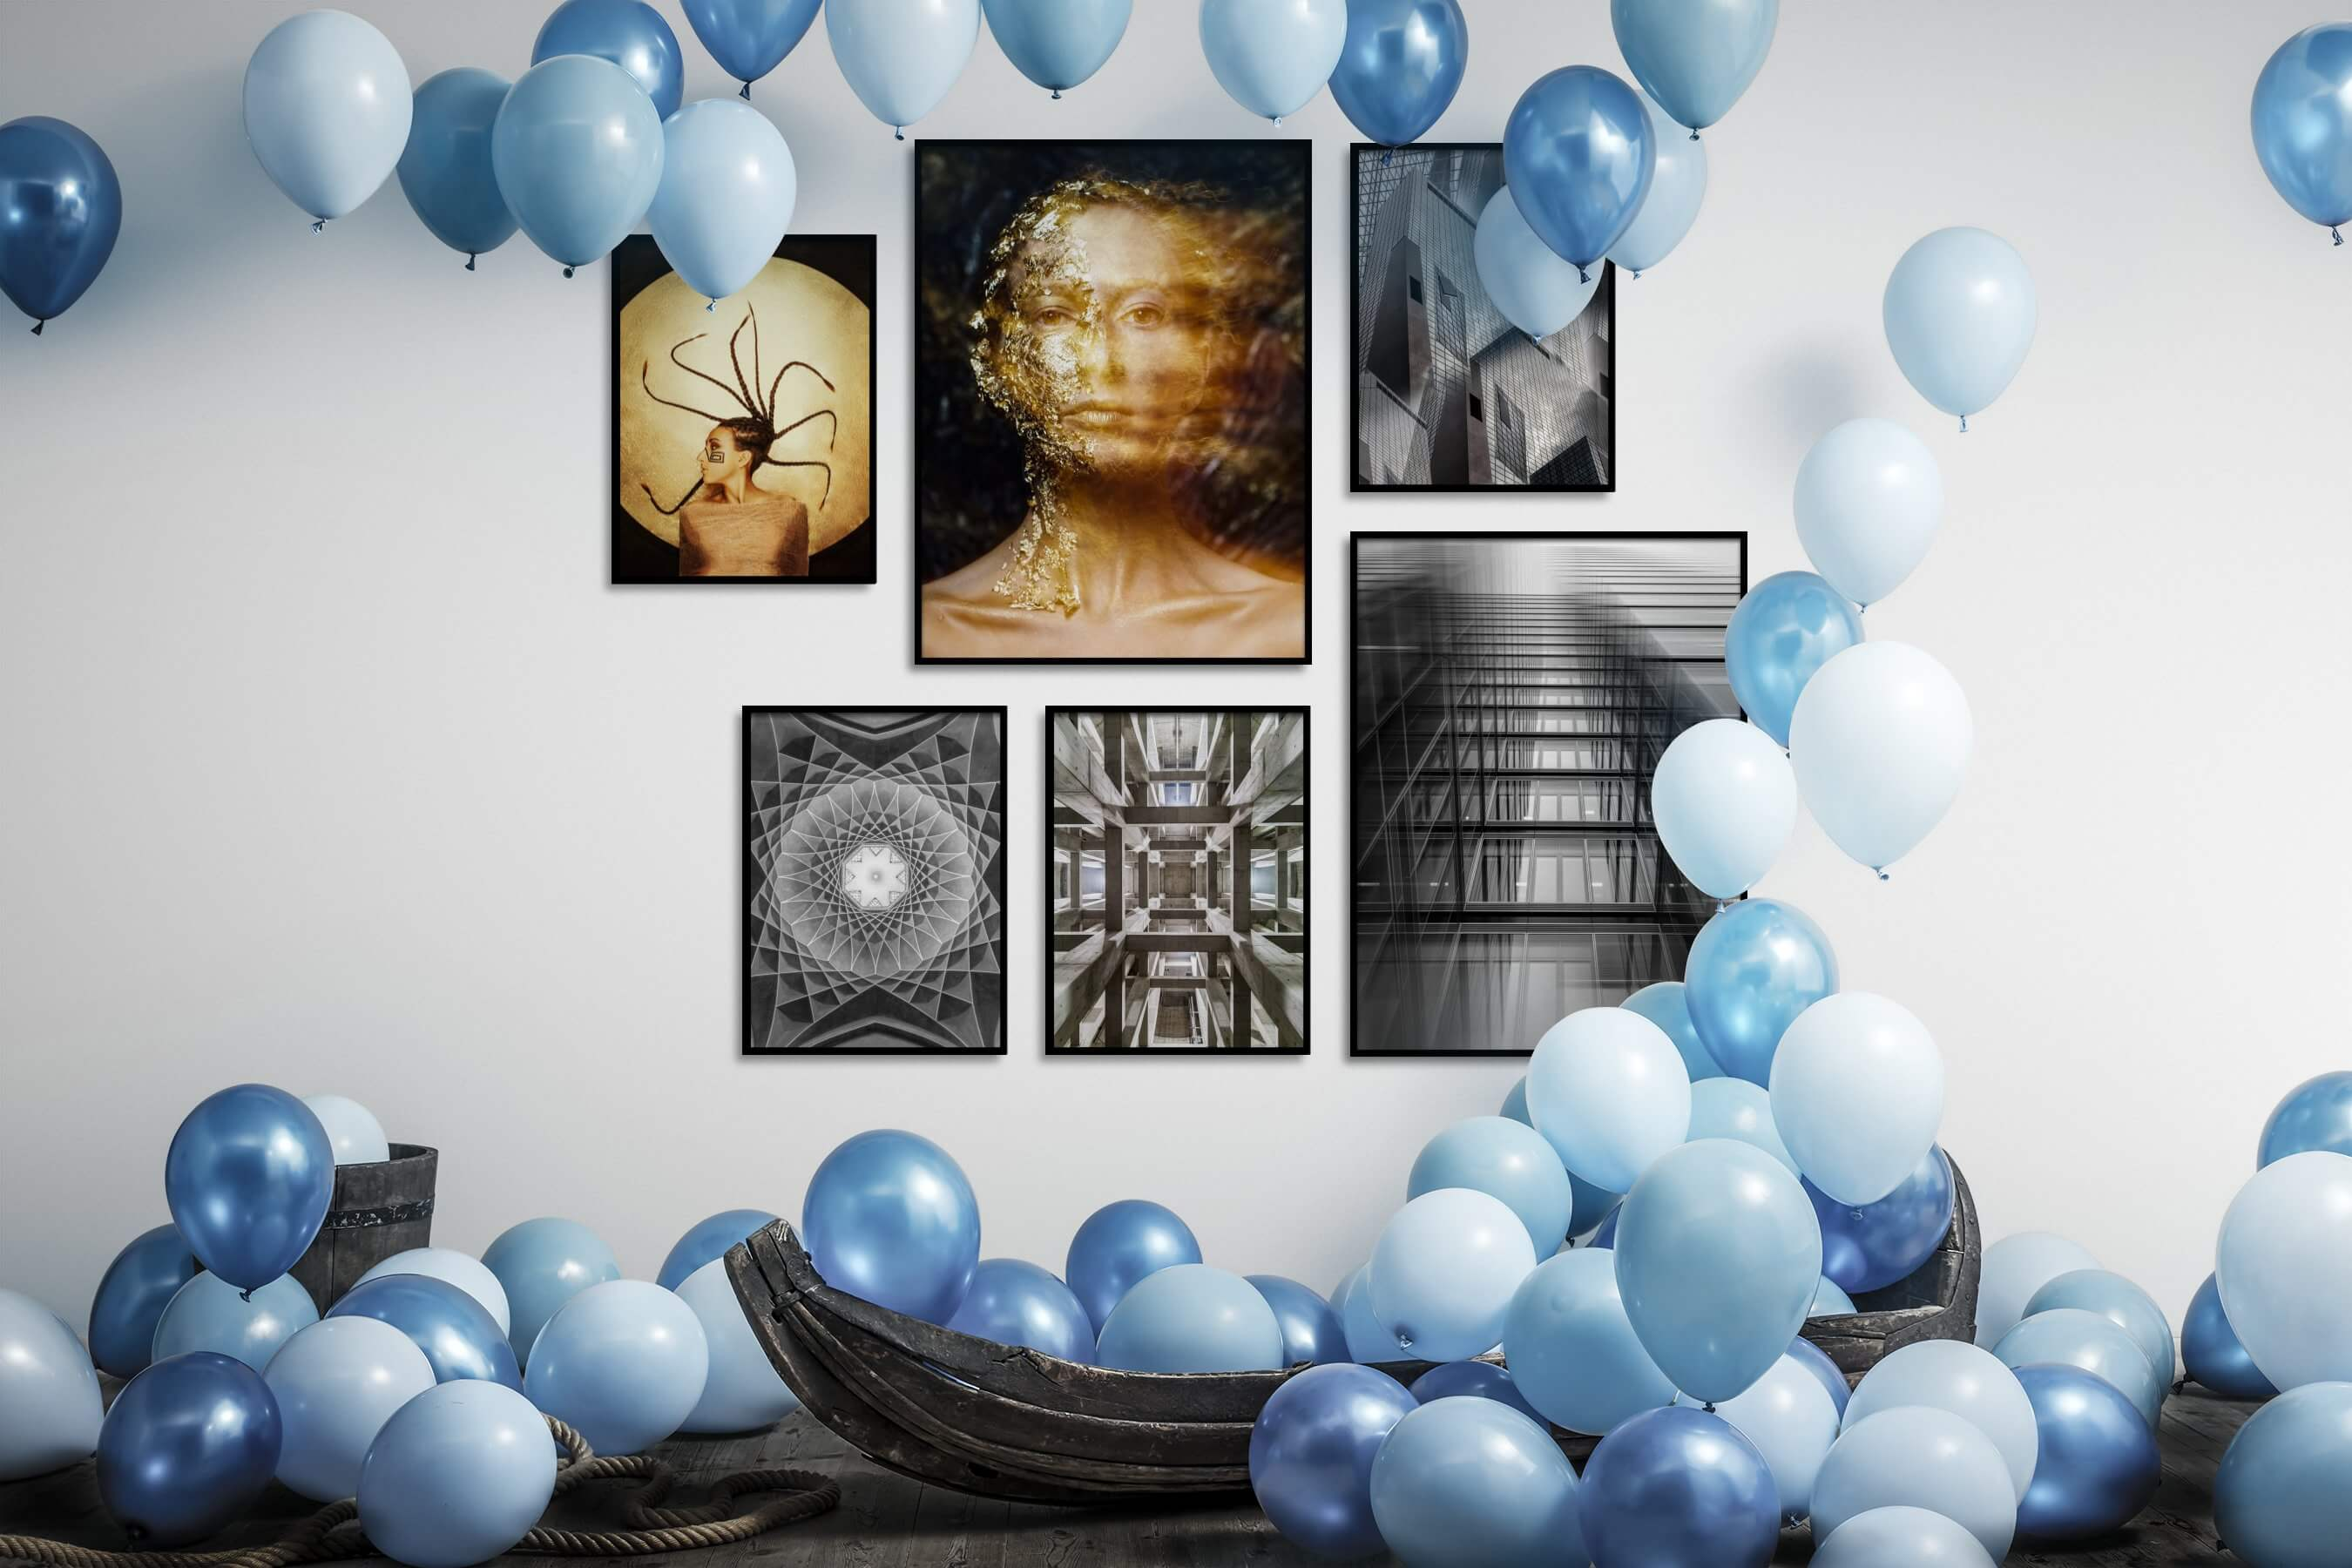 Gallery wall idea with six framed pictures arranged on a wall depicting Artsy, Fashion & Beauty, Black & White, For the Maximalist, and City Life